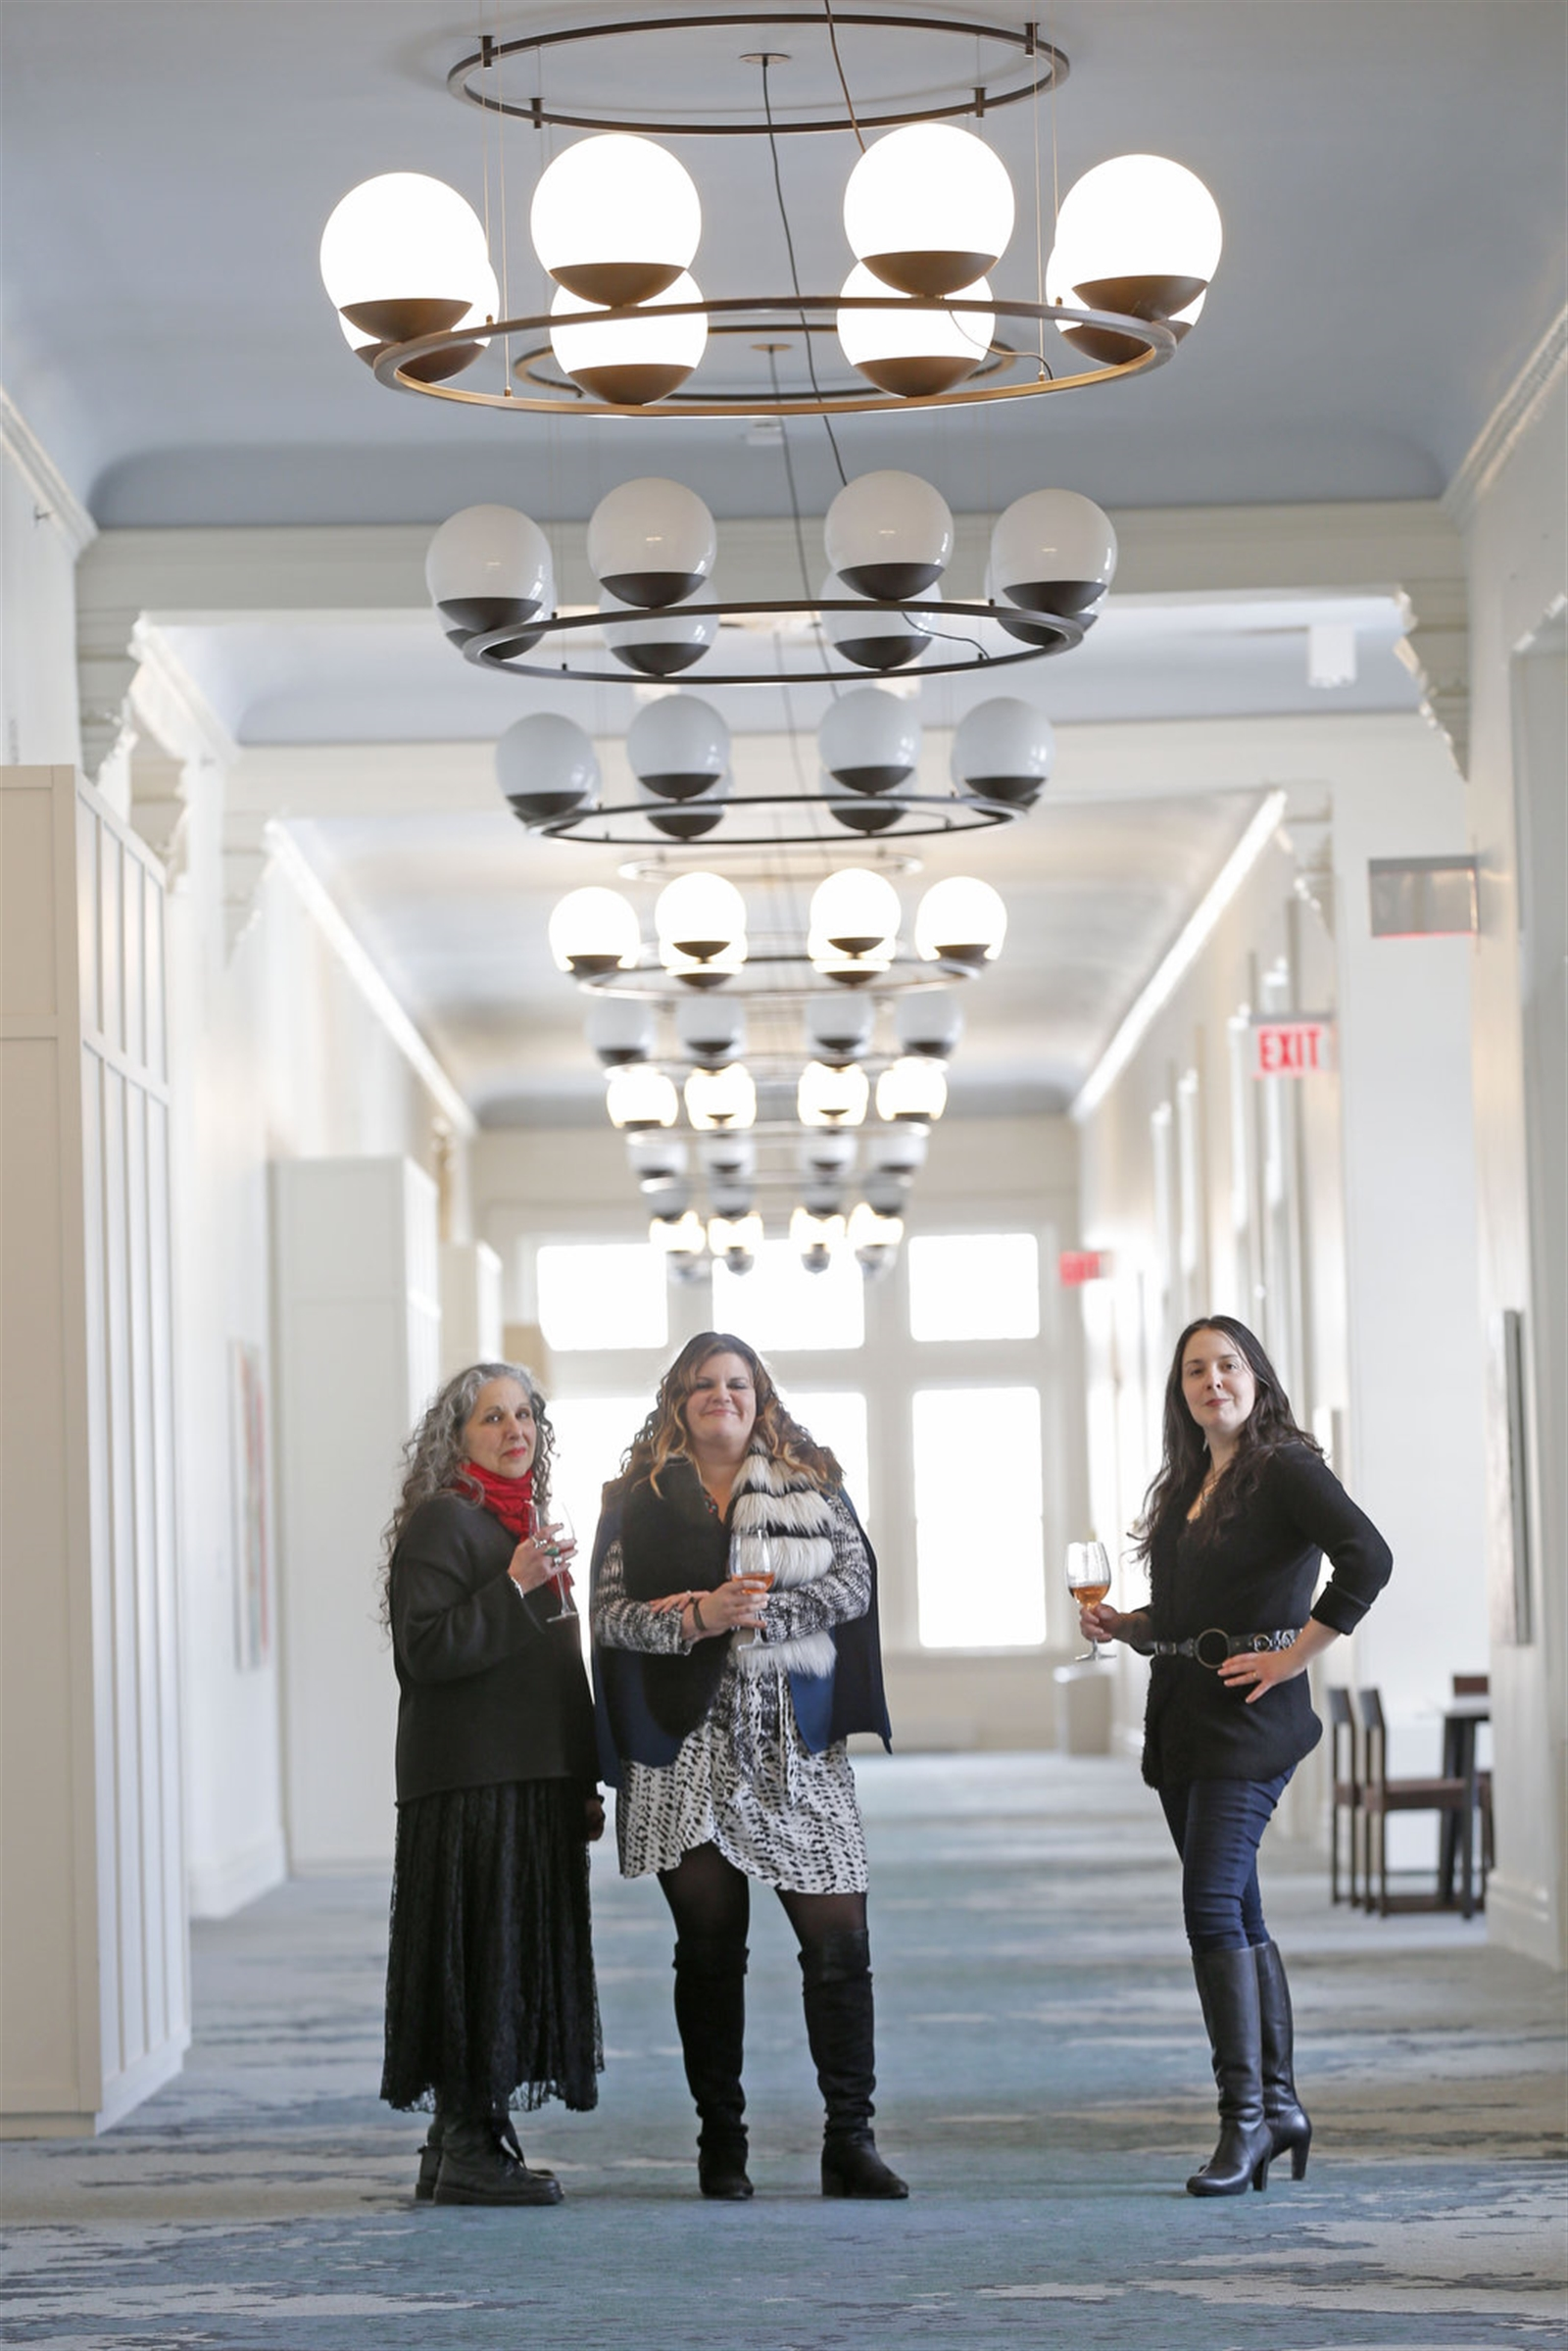 Curators, from left,  Elisabeth Samuels, Emily Tucker and Anna Kaplan, with locally based  Resource:Art collaborative were responsible for choosing the art for the Corridors Gallery at Hotel Henry.